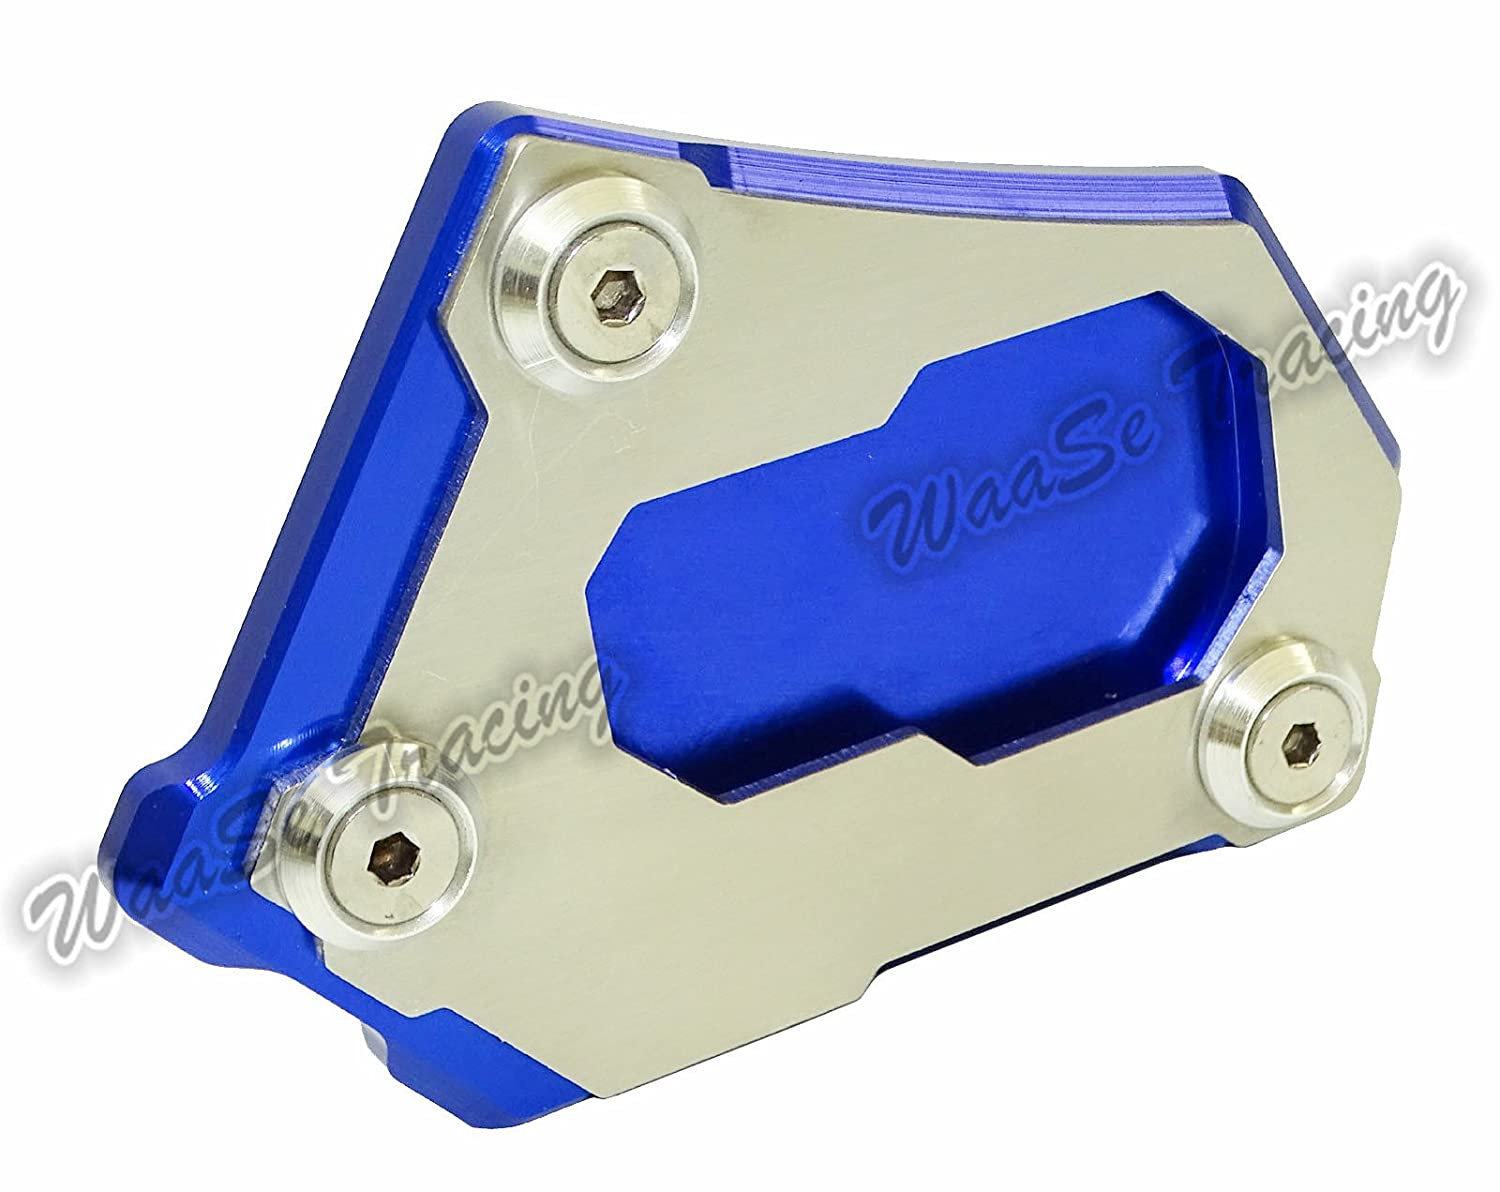 Gold waase R 1200 GS Motorcycle Kickstand Foot Side Stand Extension Pad Support Plate For BMW R1200GS LC K50 2012 2013 2014 2015 2016